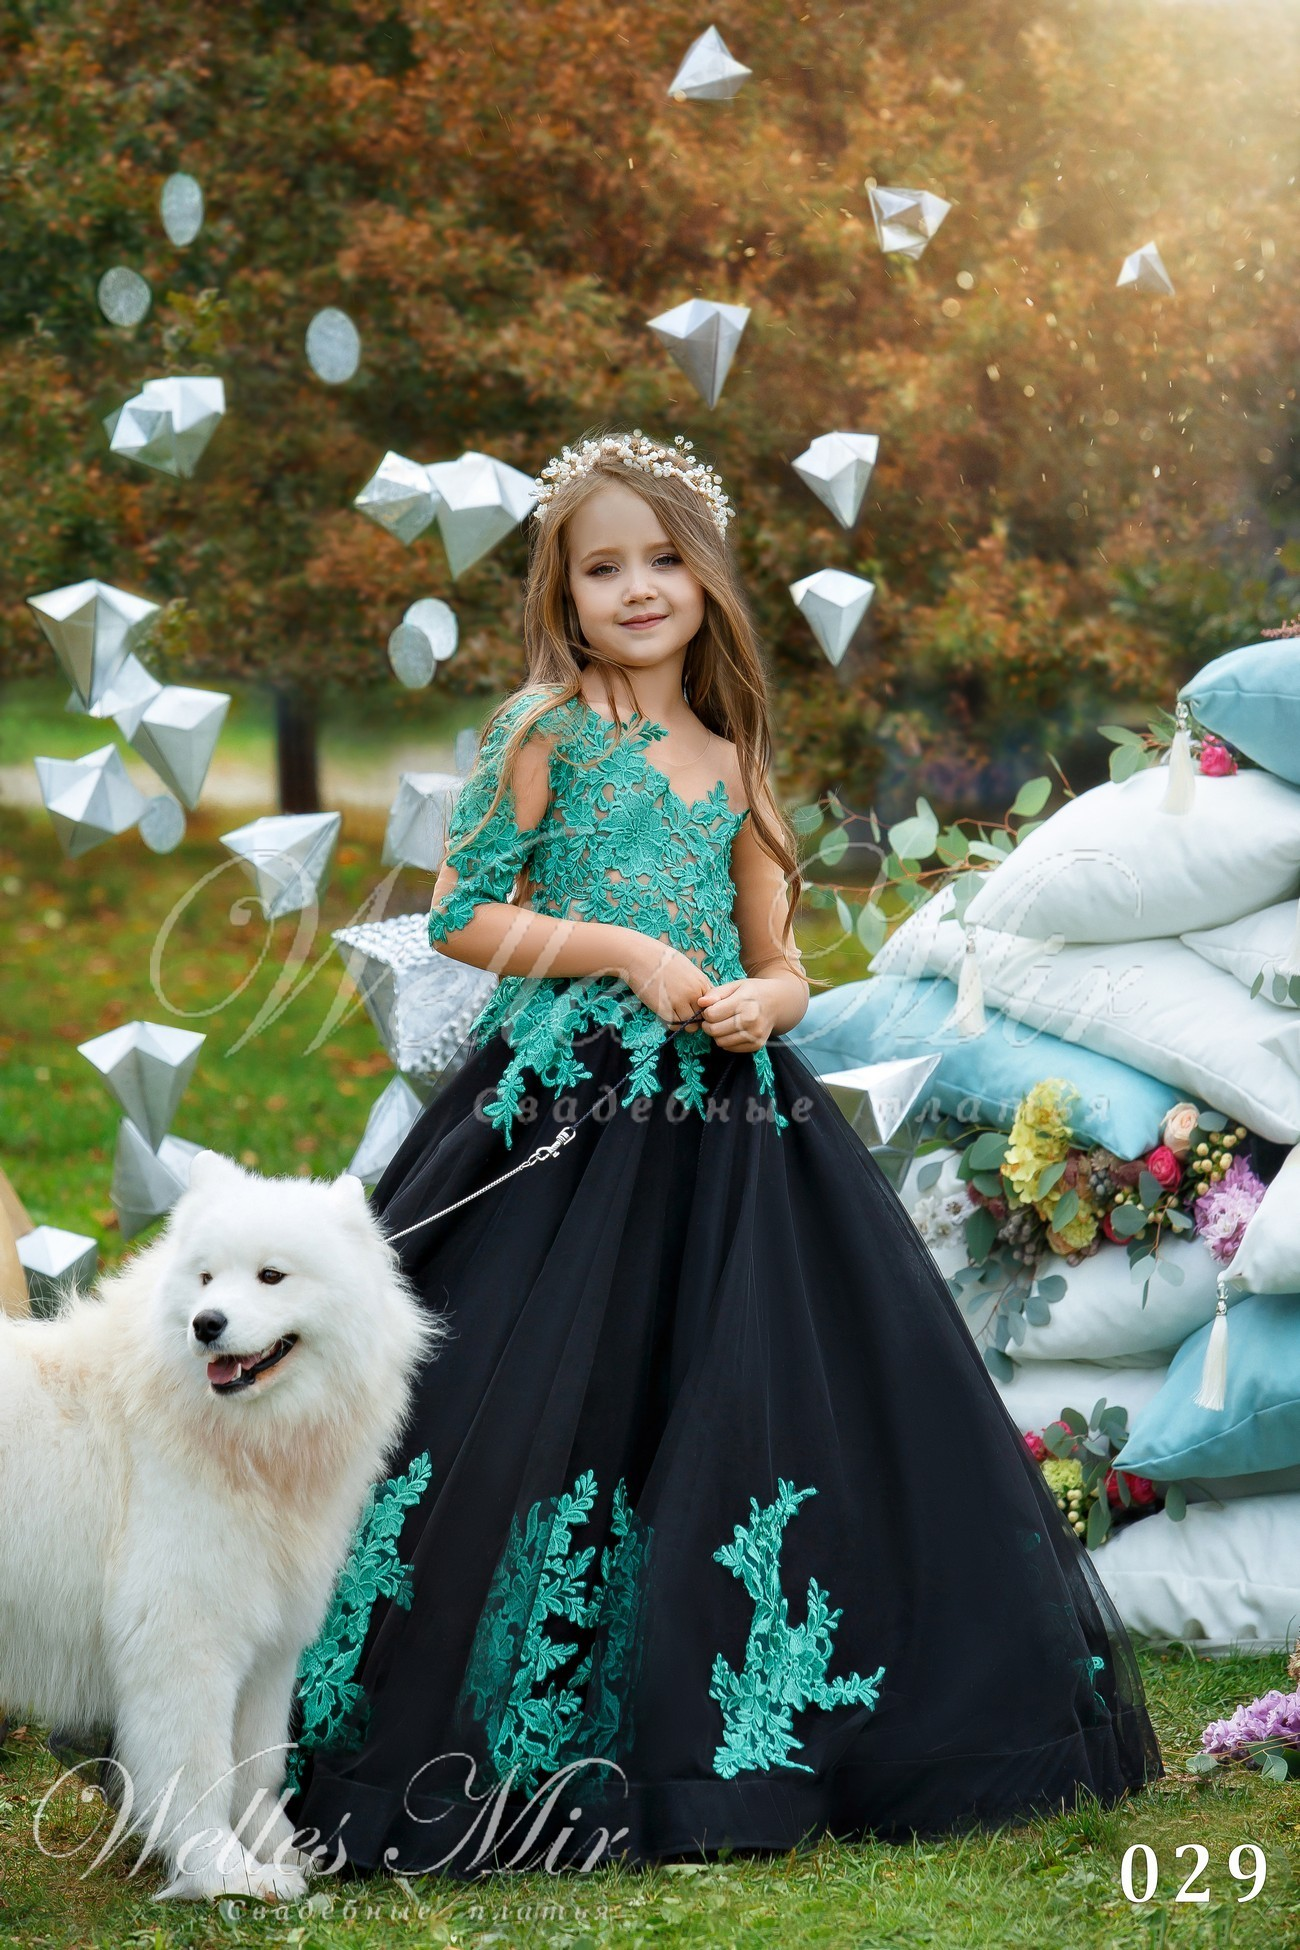 Kids Deluxe Collection 2018 - 029